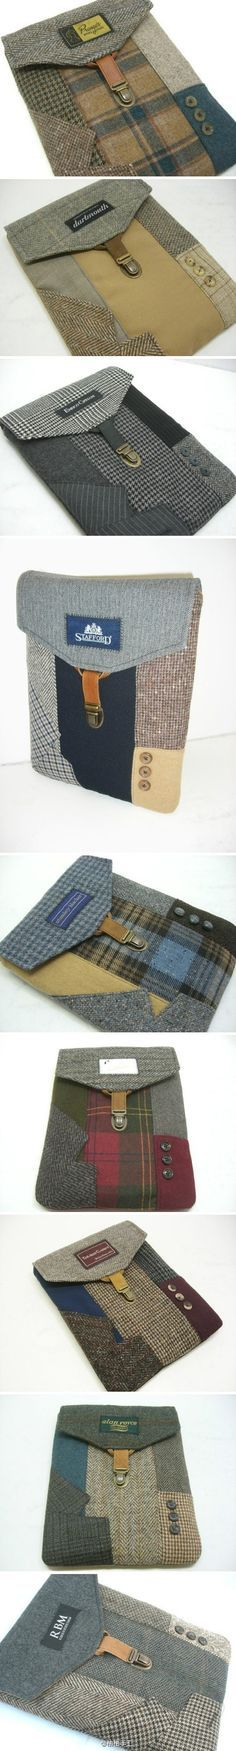 ipad or notebook cover, use scraps of wool fabric. No pattern, but I like the look.